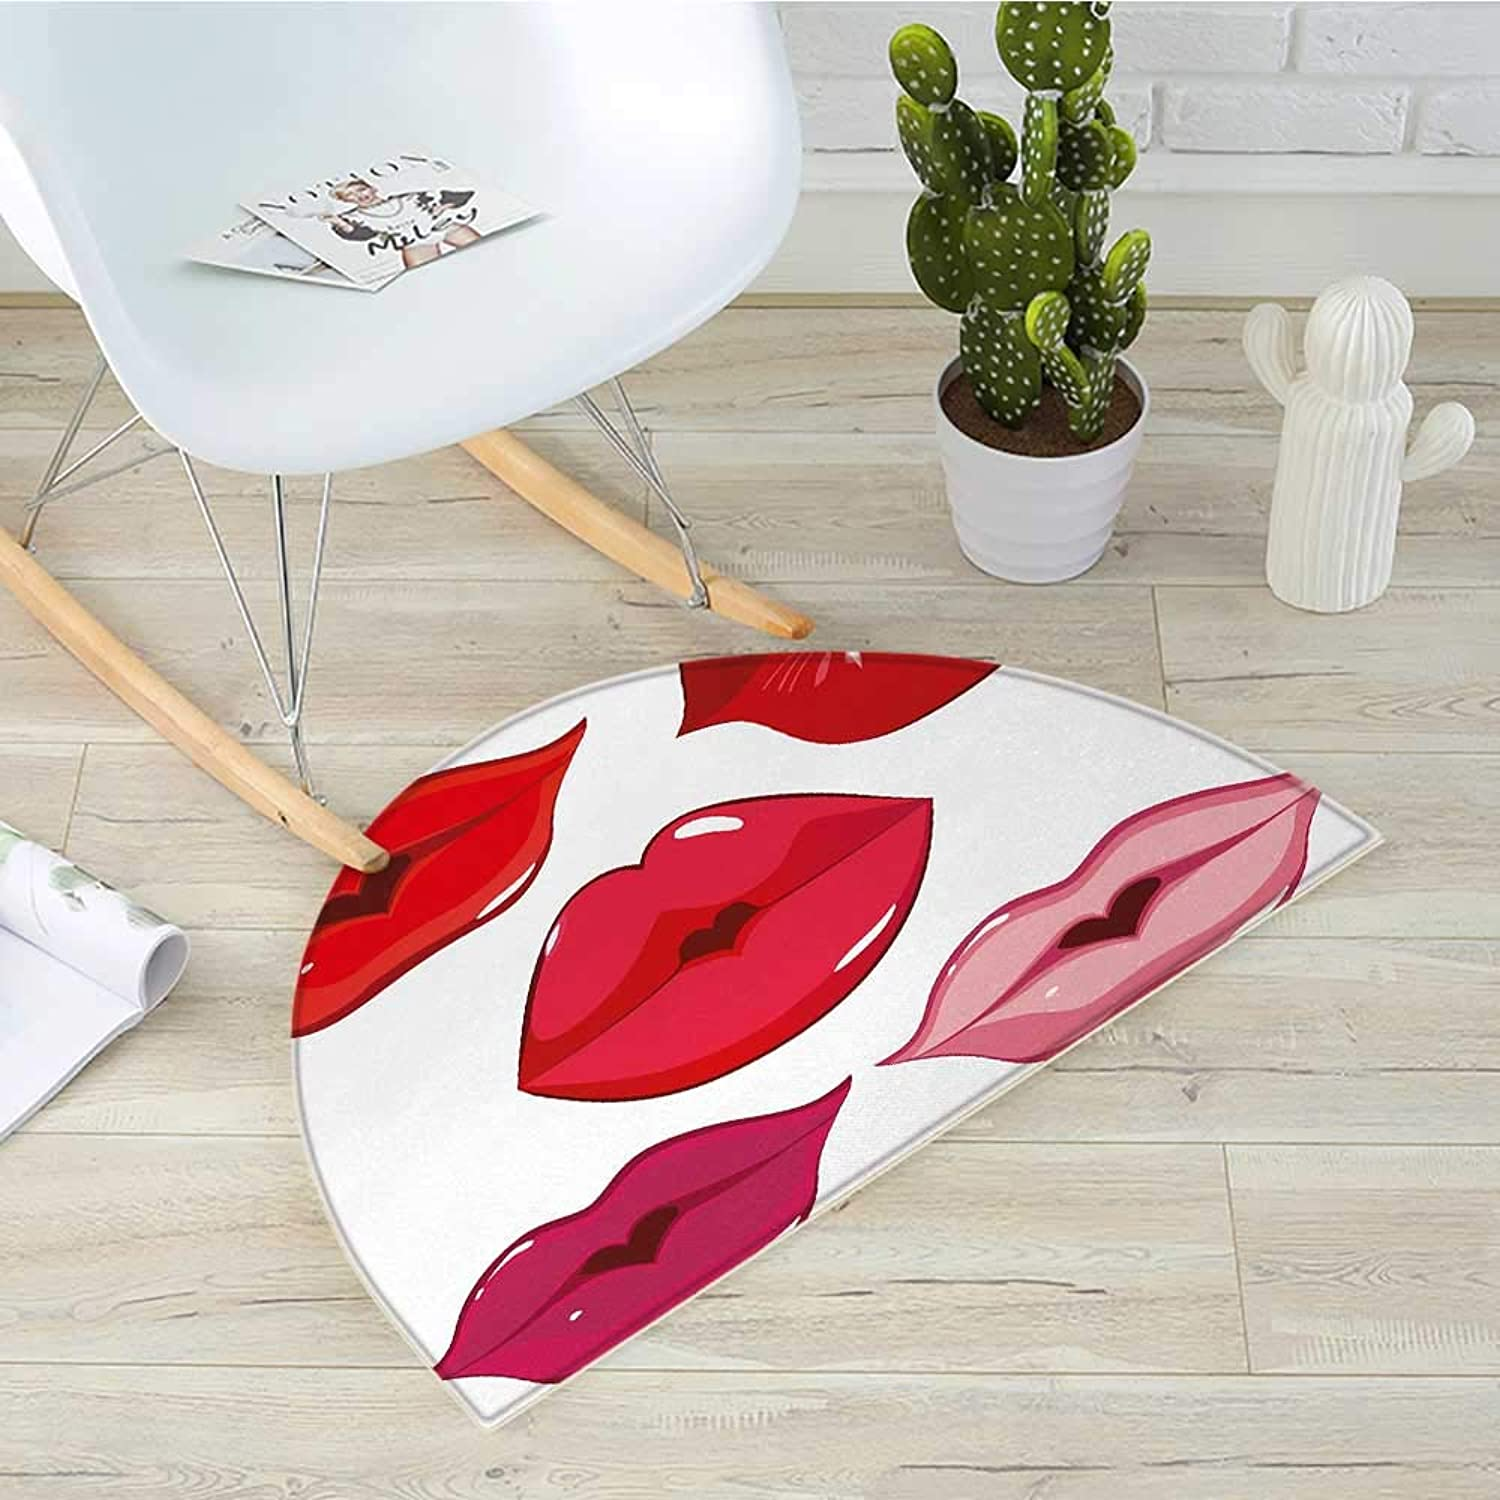 Kiss Semicircular CushionWoman Sexy Lip Heart Shape Kiss Female Valentine Affection Amour Make Up Entry Door Mat H 39.3  xD 59  Red pink Pink White